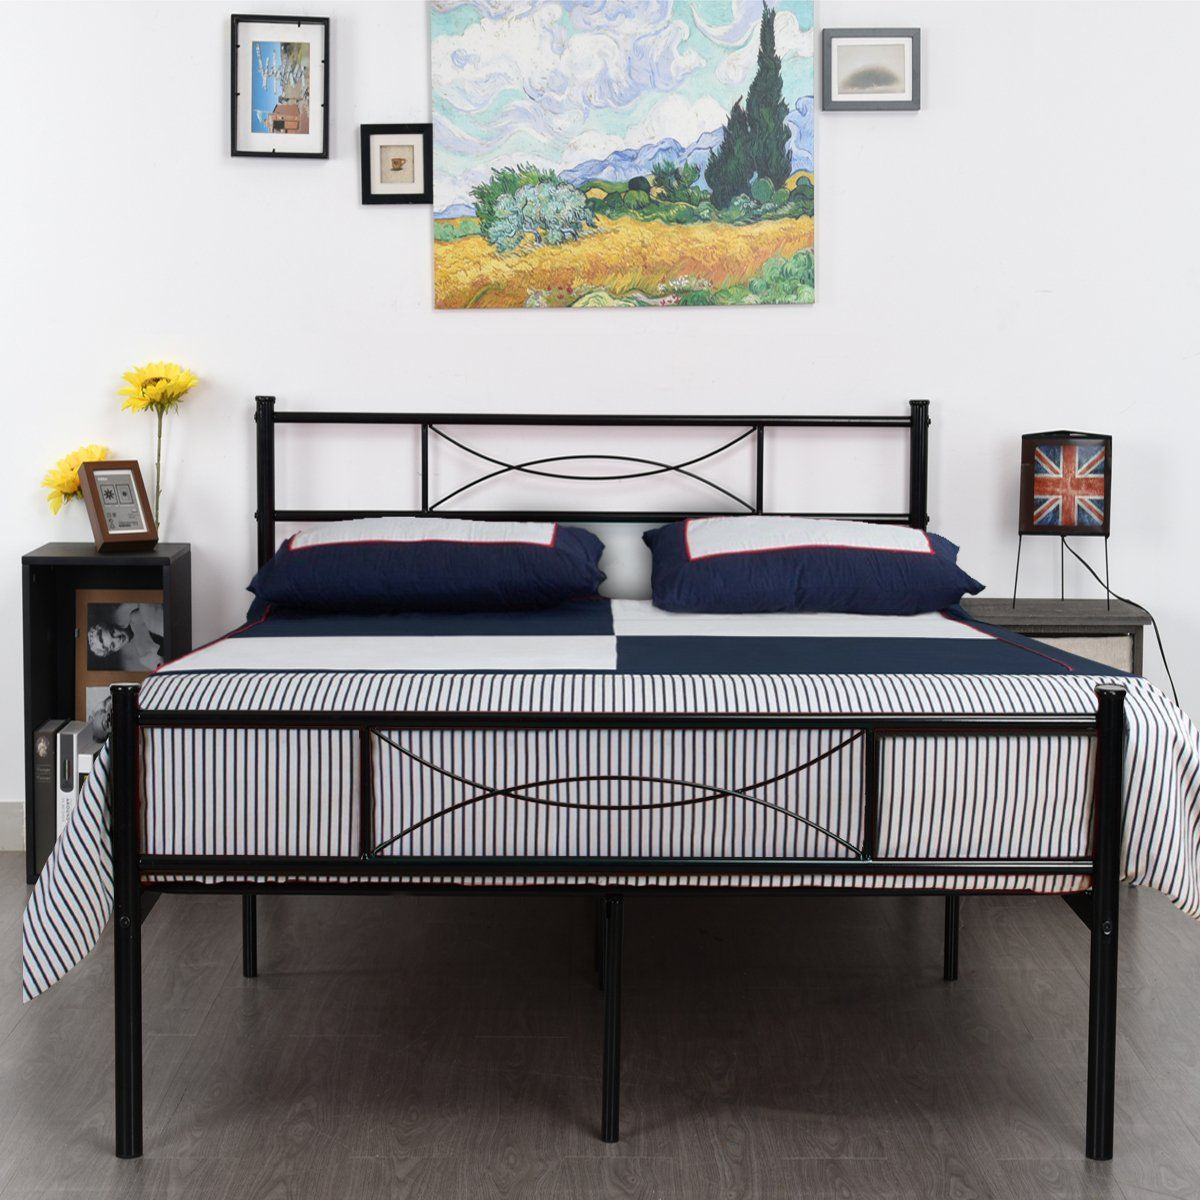 simlife metal bed frame full size 10 legs two headboards mattress